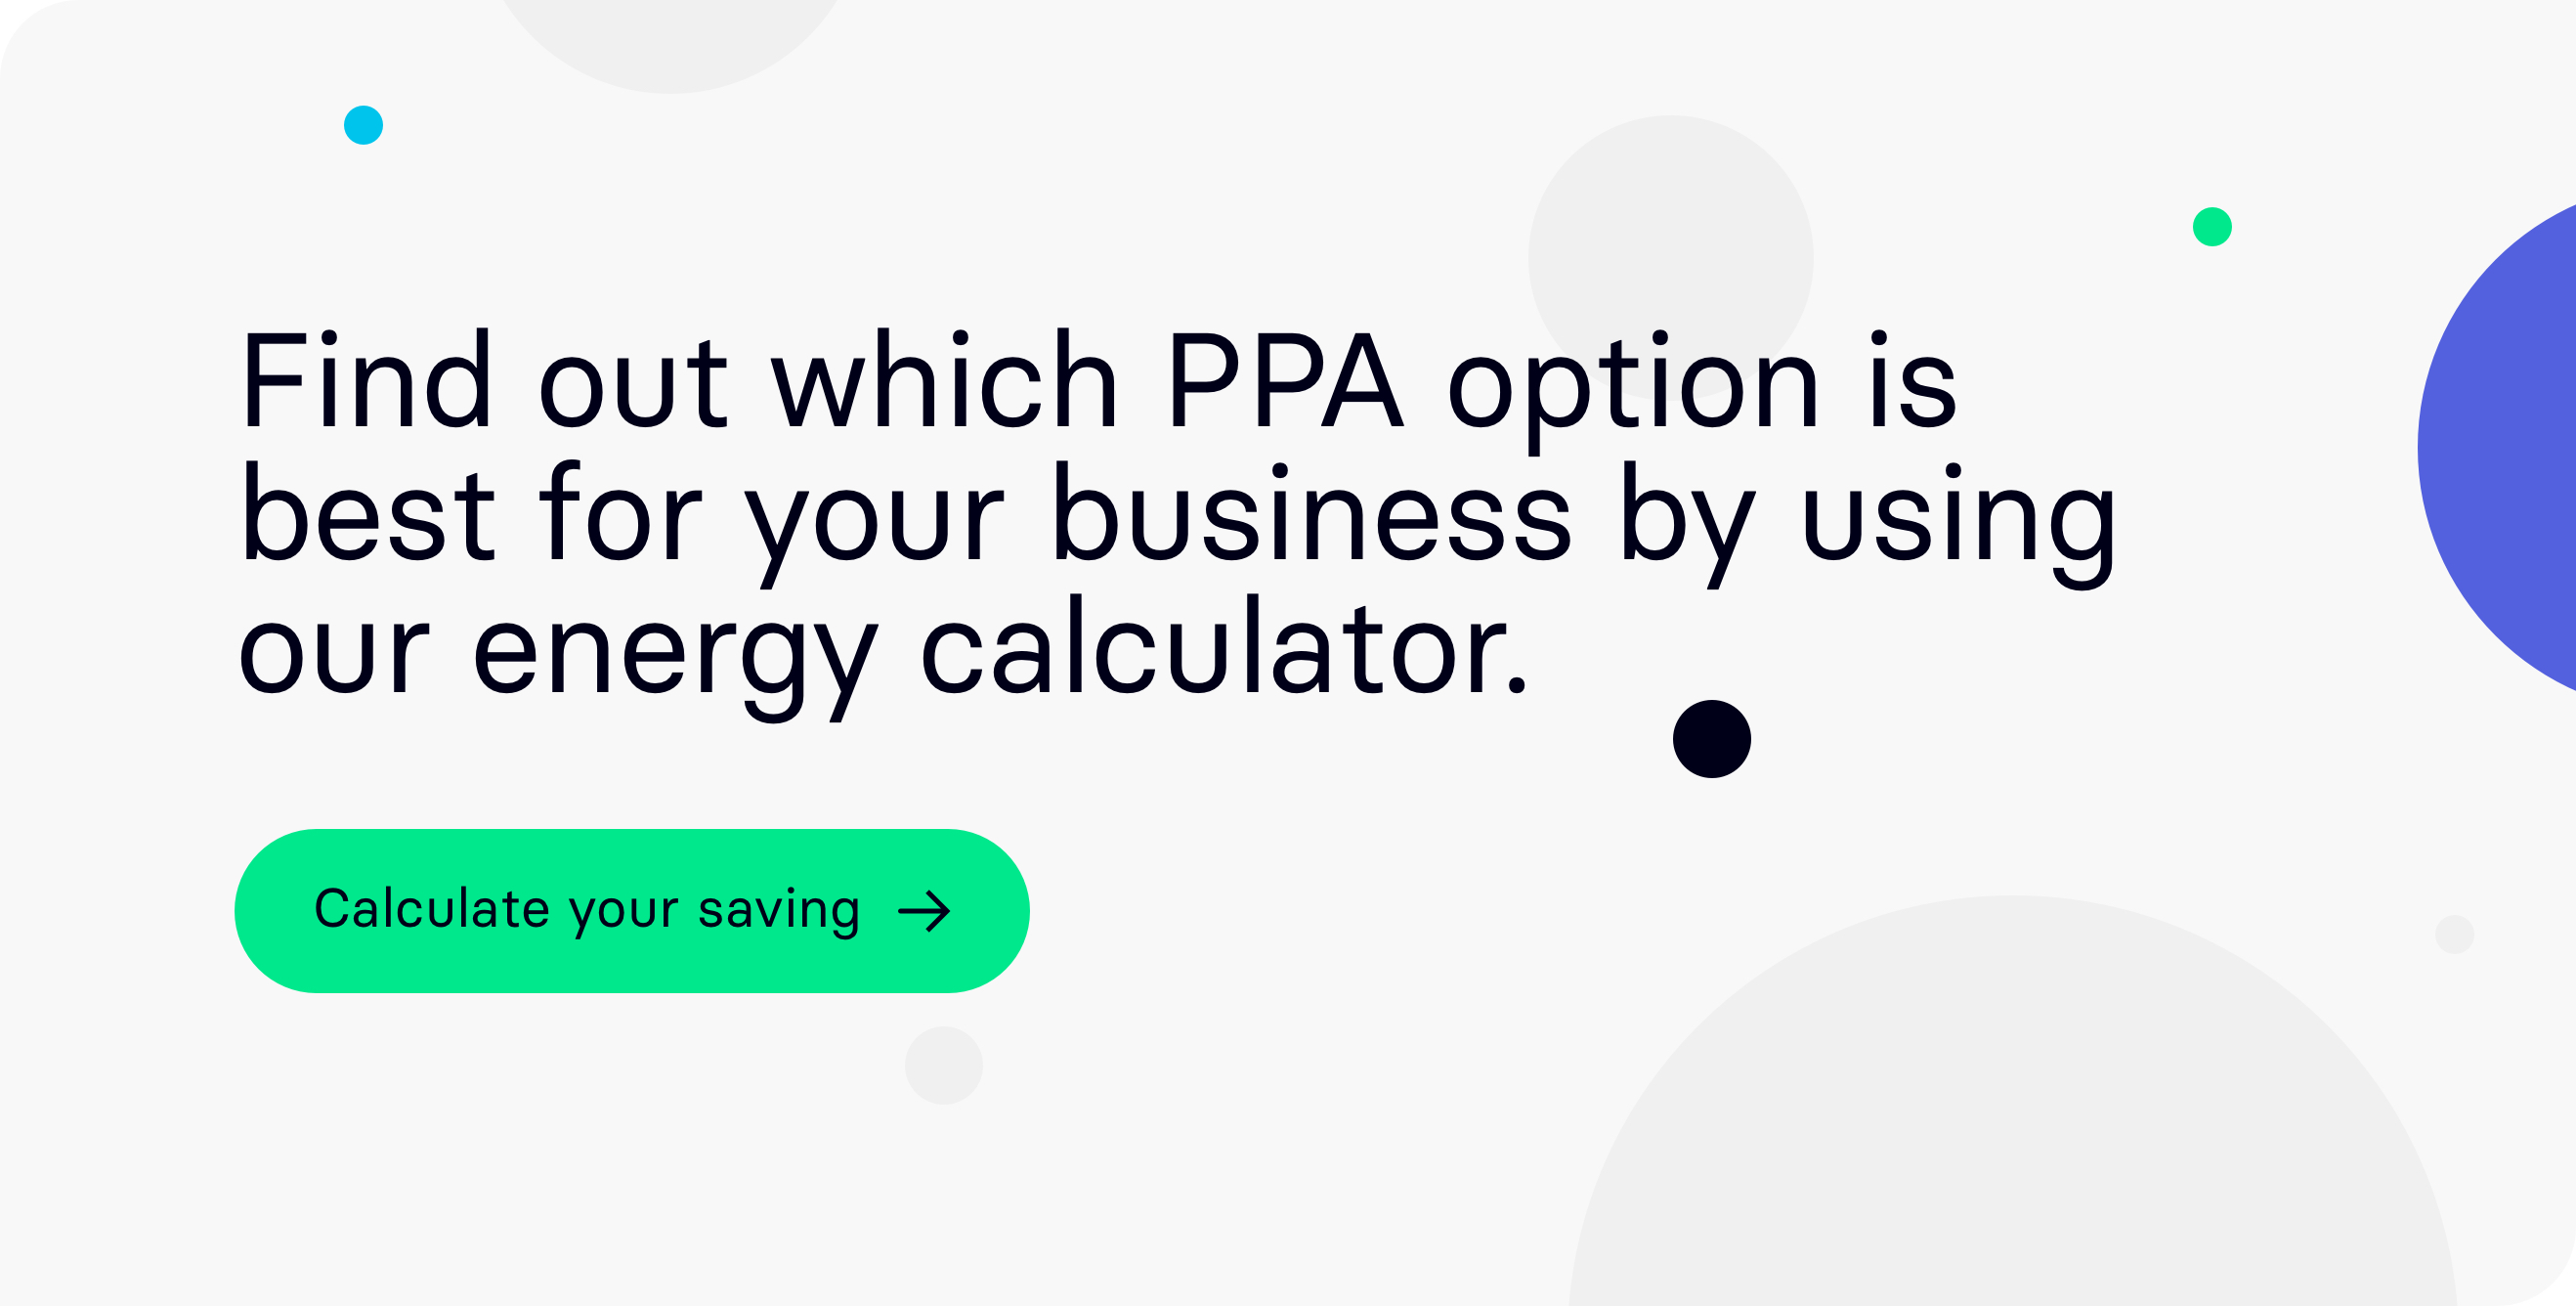 Find out which PPA option is best for your business by using our energy calculator